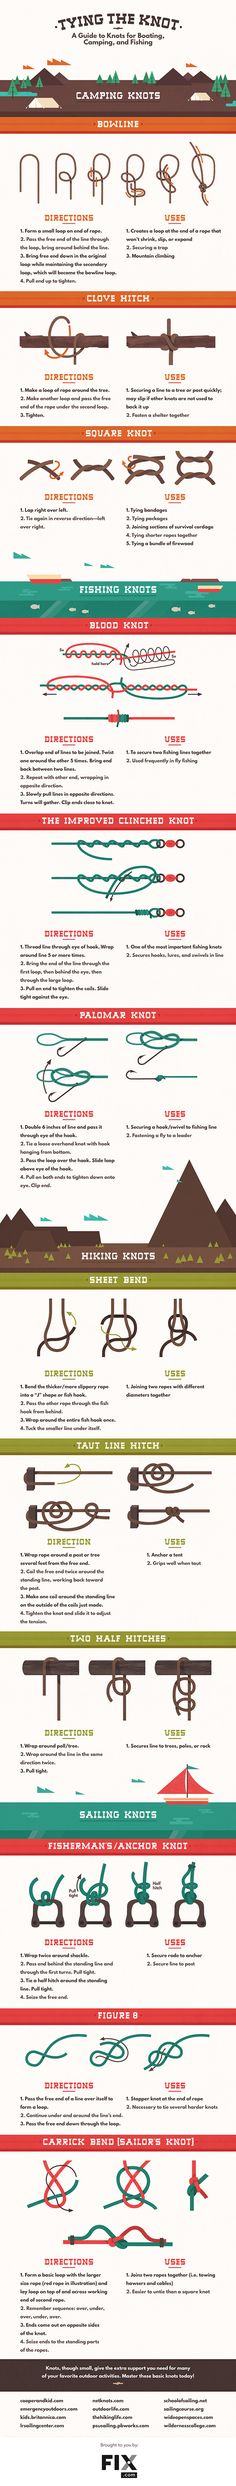 Illustrated knots! Journal — Colter Co. http://buff.ly/1JPqecv